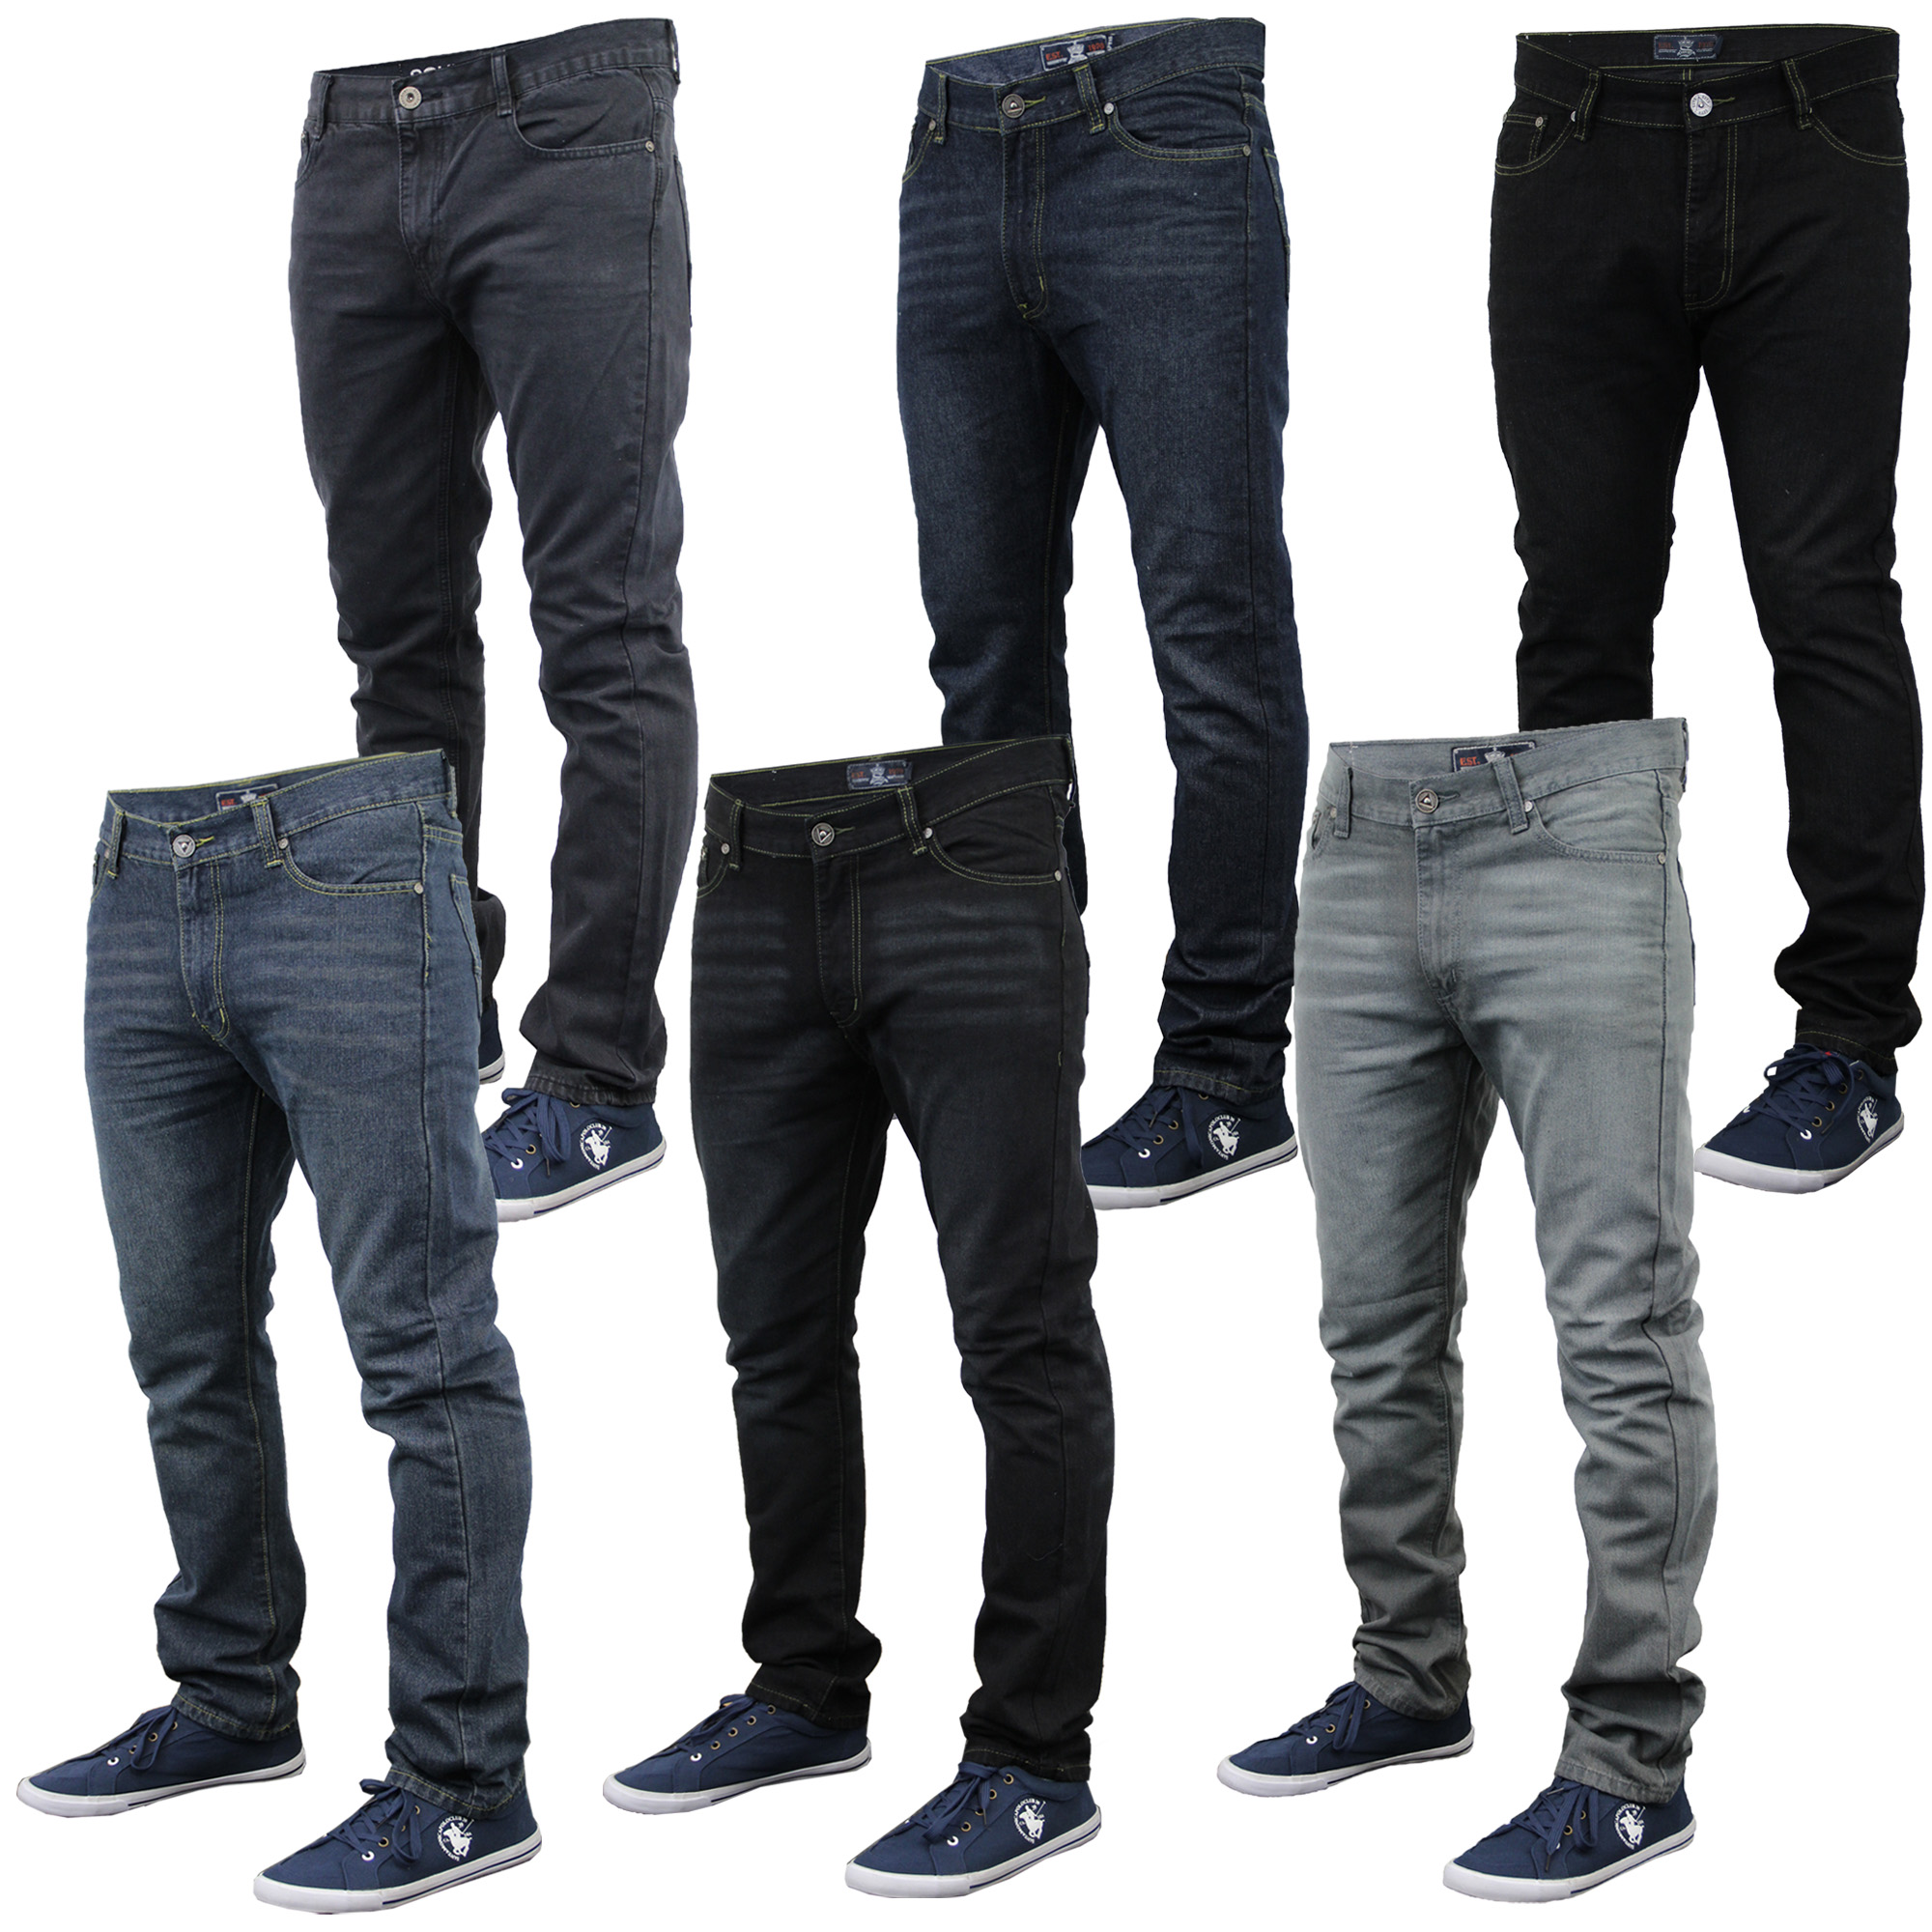 Mens Denim Jeans Soul Star Pants Slim Fit Trousers Designer Bottoms ... cba2d6a4e7